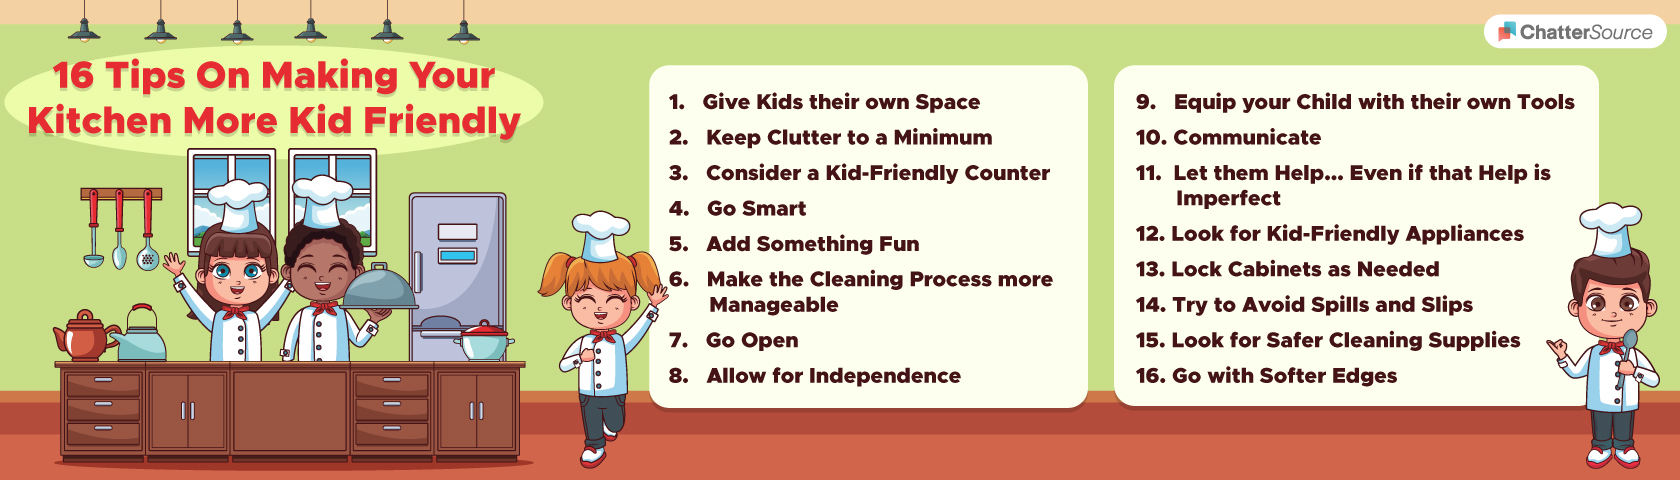 making your kitchen more kid-friendly infographic